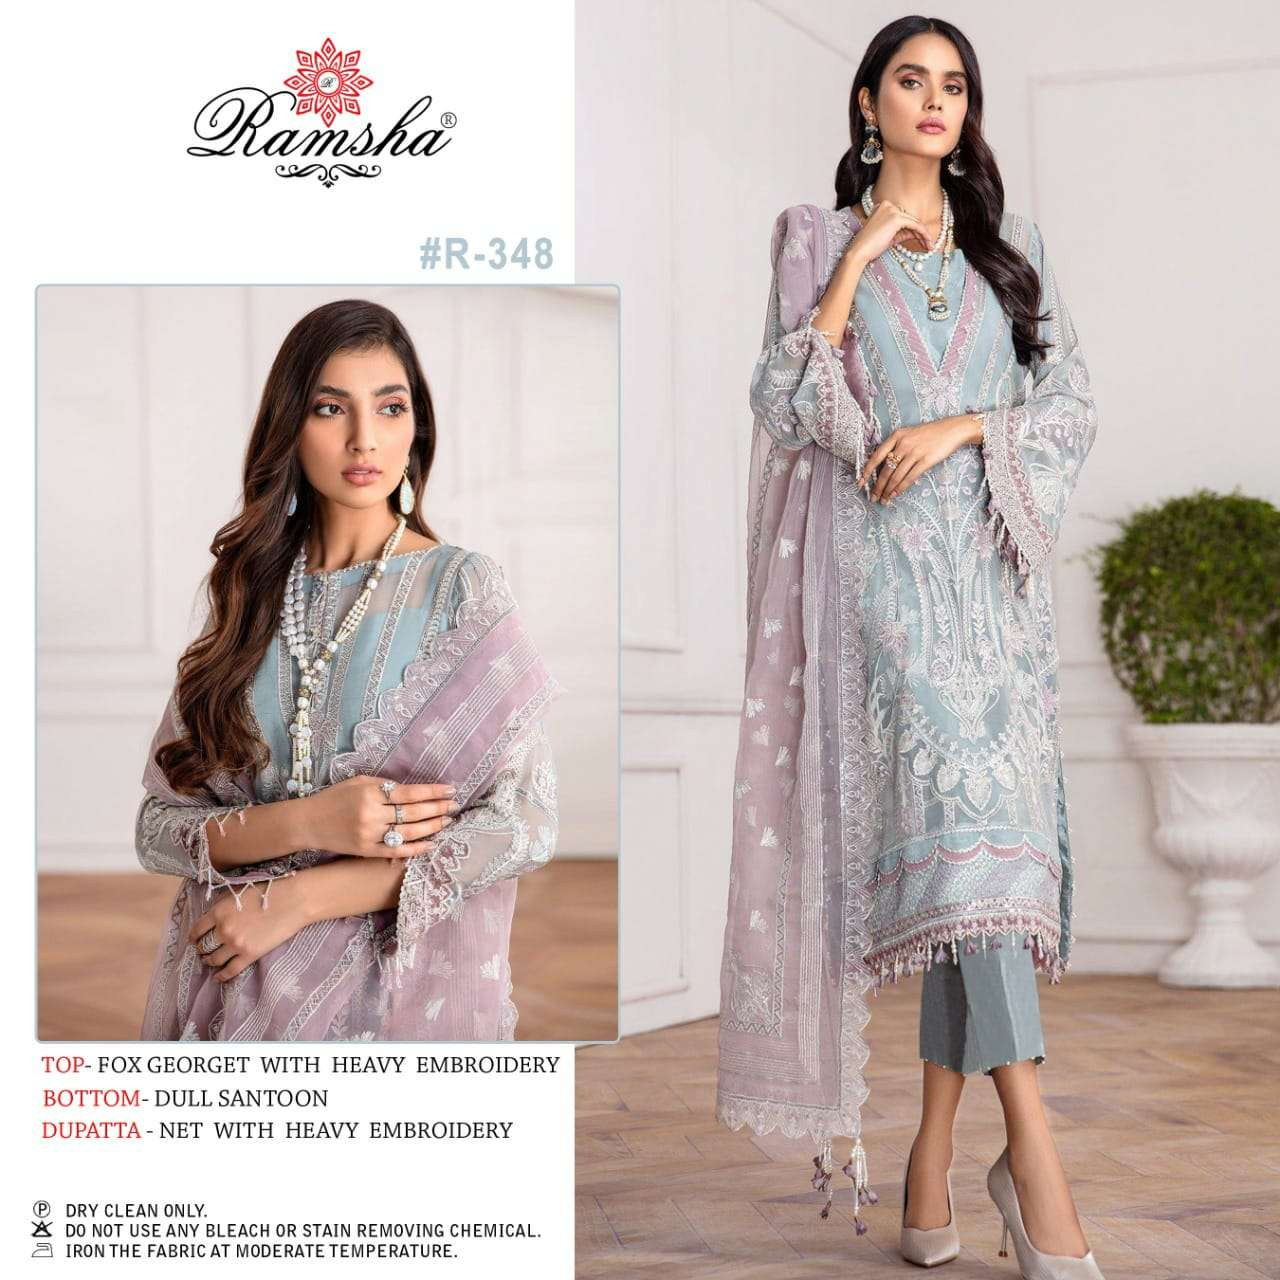 RAMSHA VOL 21 DESIGNER GEORGETTE WITH HEAVY EMBROIDERY WORK PAKISTANI PATTERN PARTYWEAR SUITS WHOLESALE